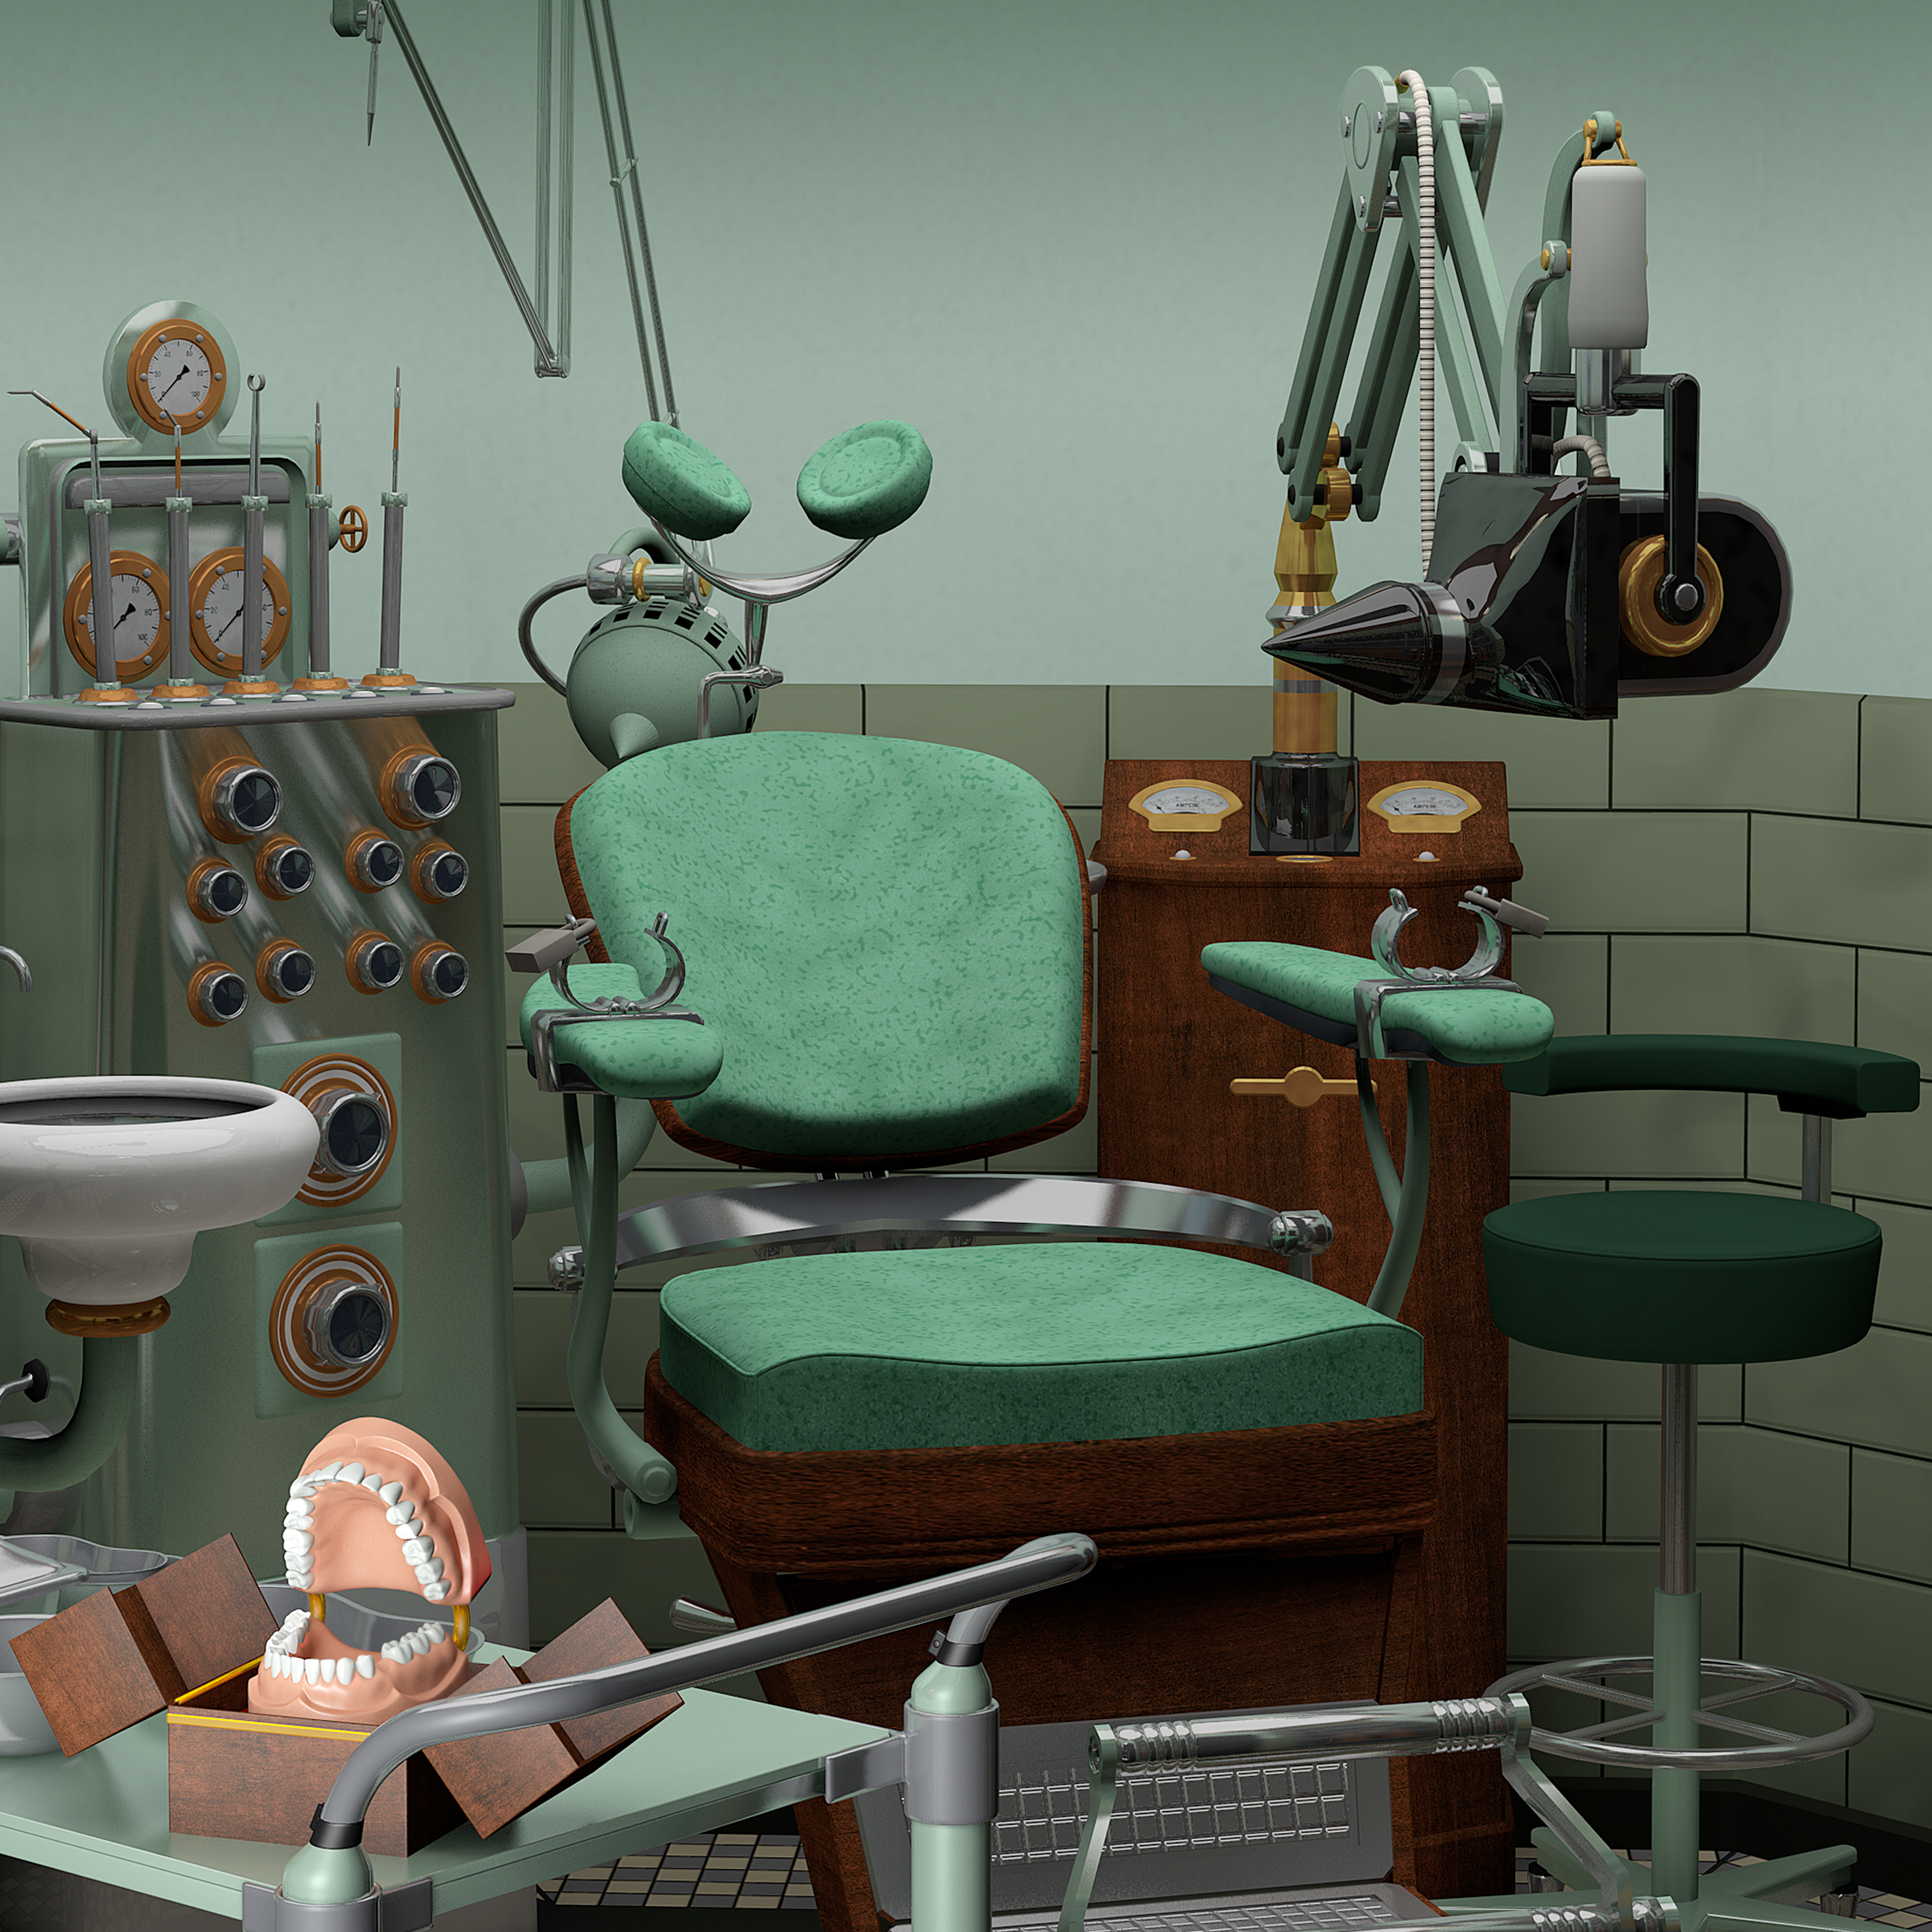 Escape Room The Game - The Dentist